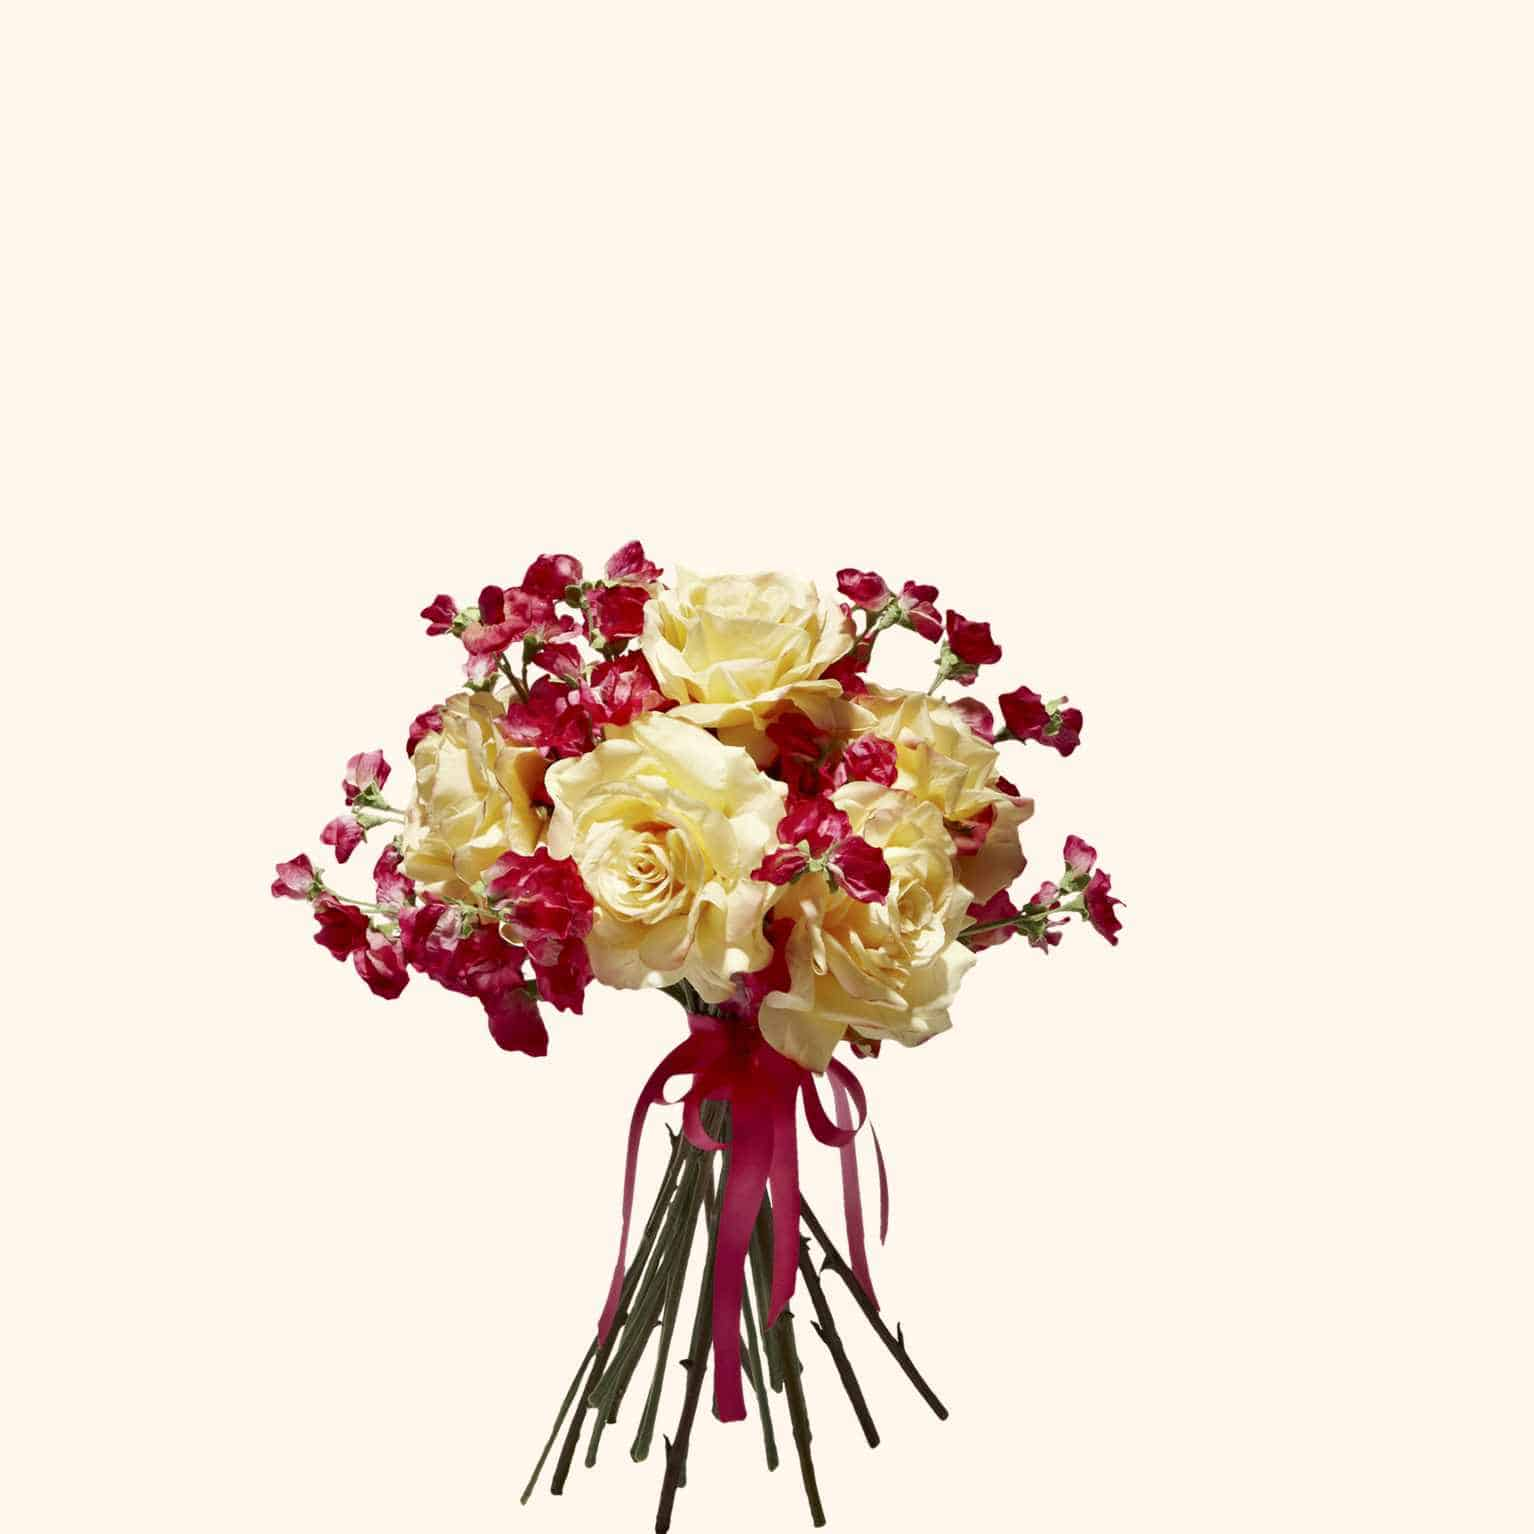 Hire Small Silk Flower Arrangements